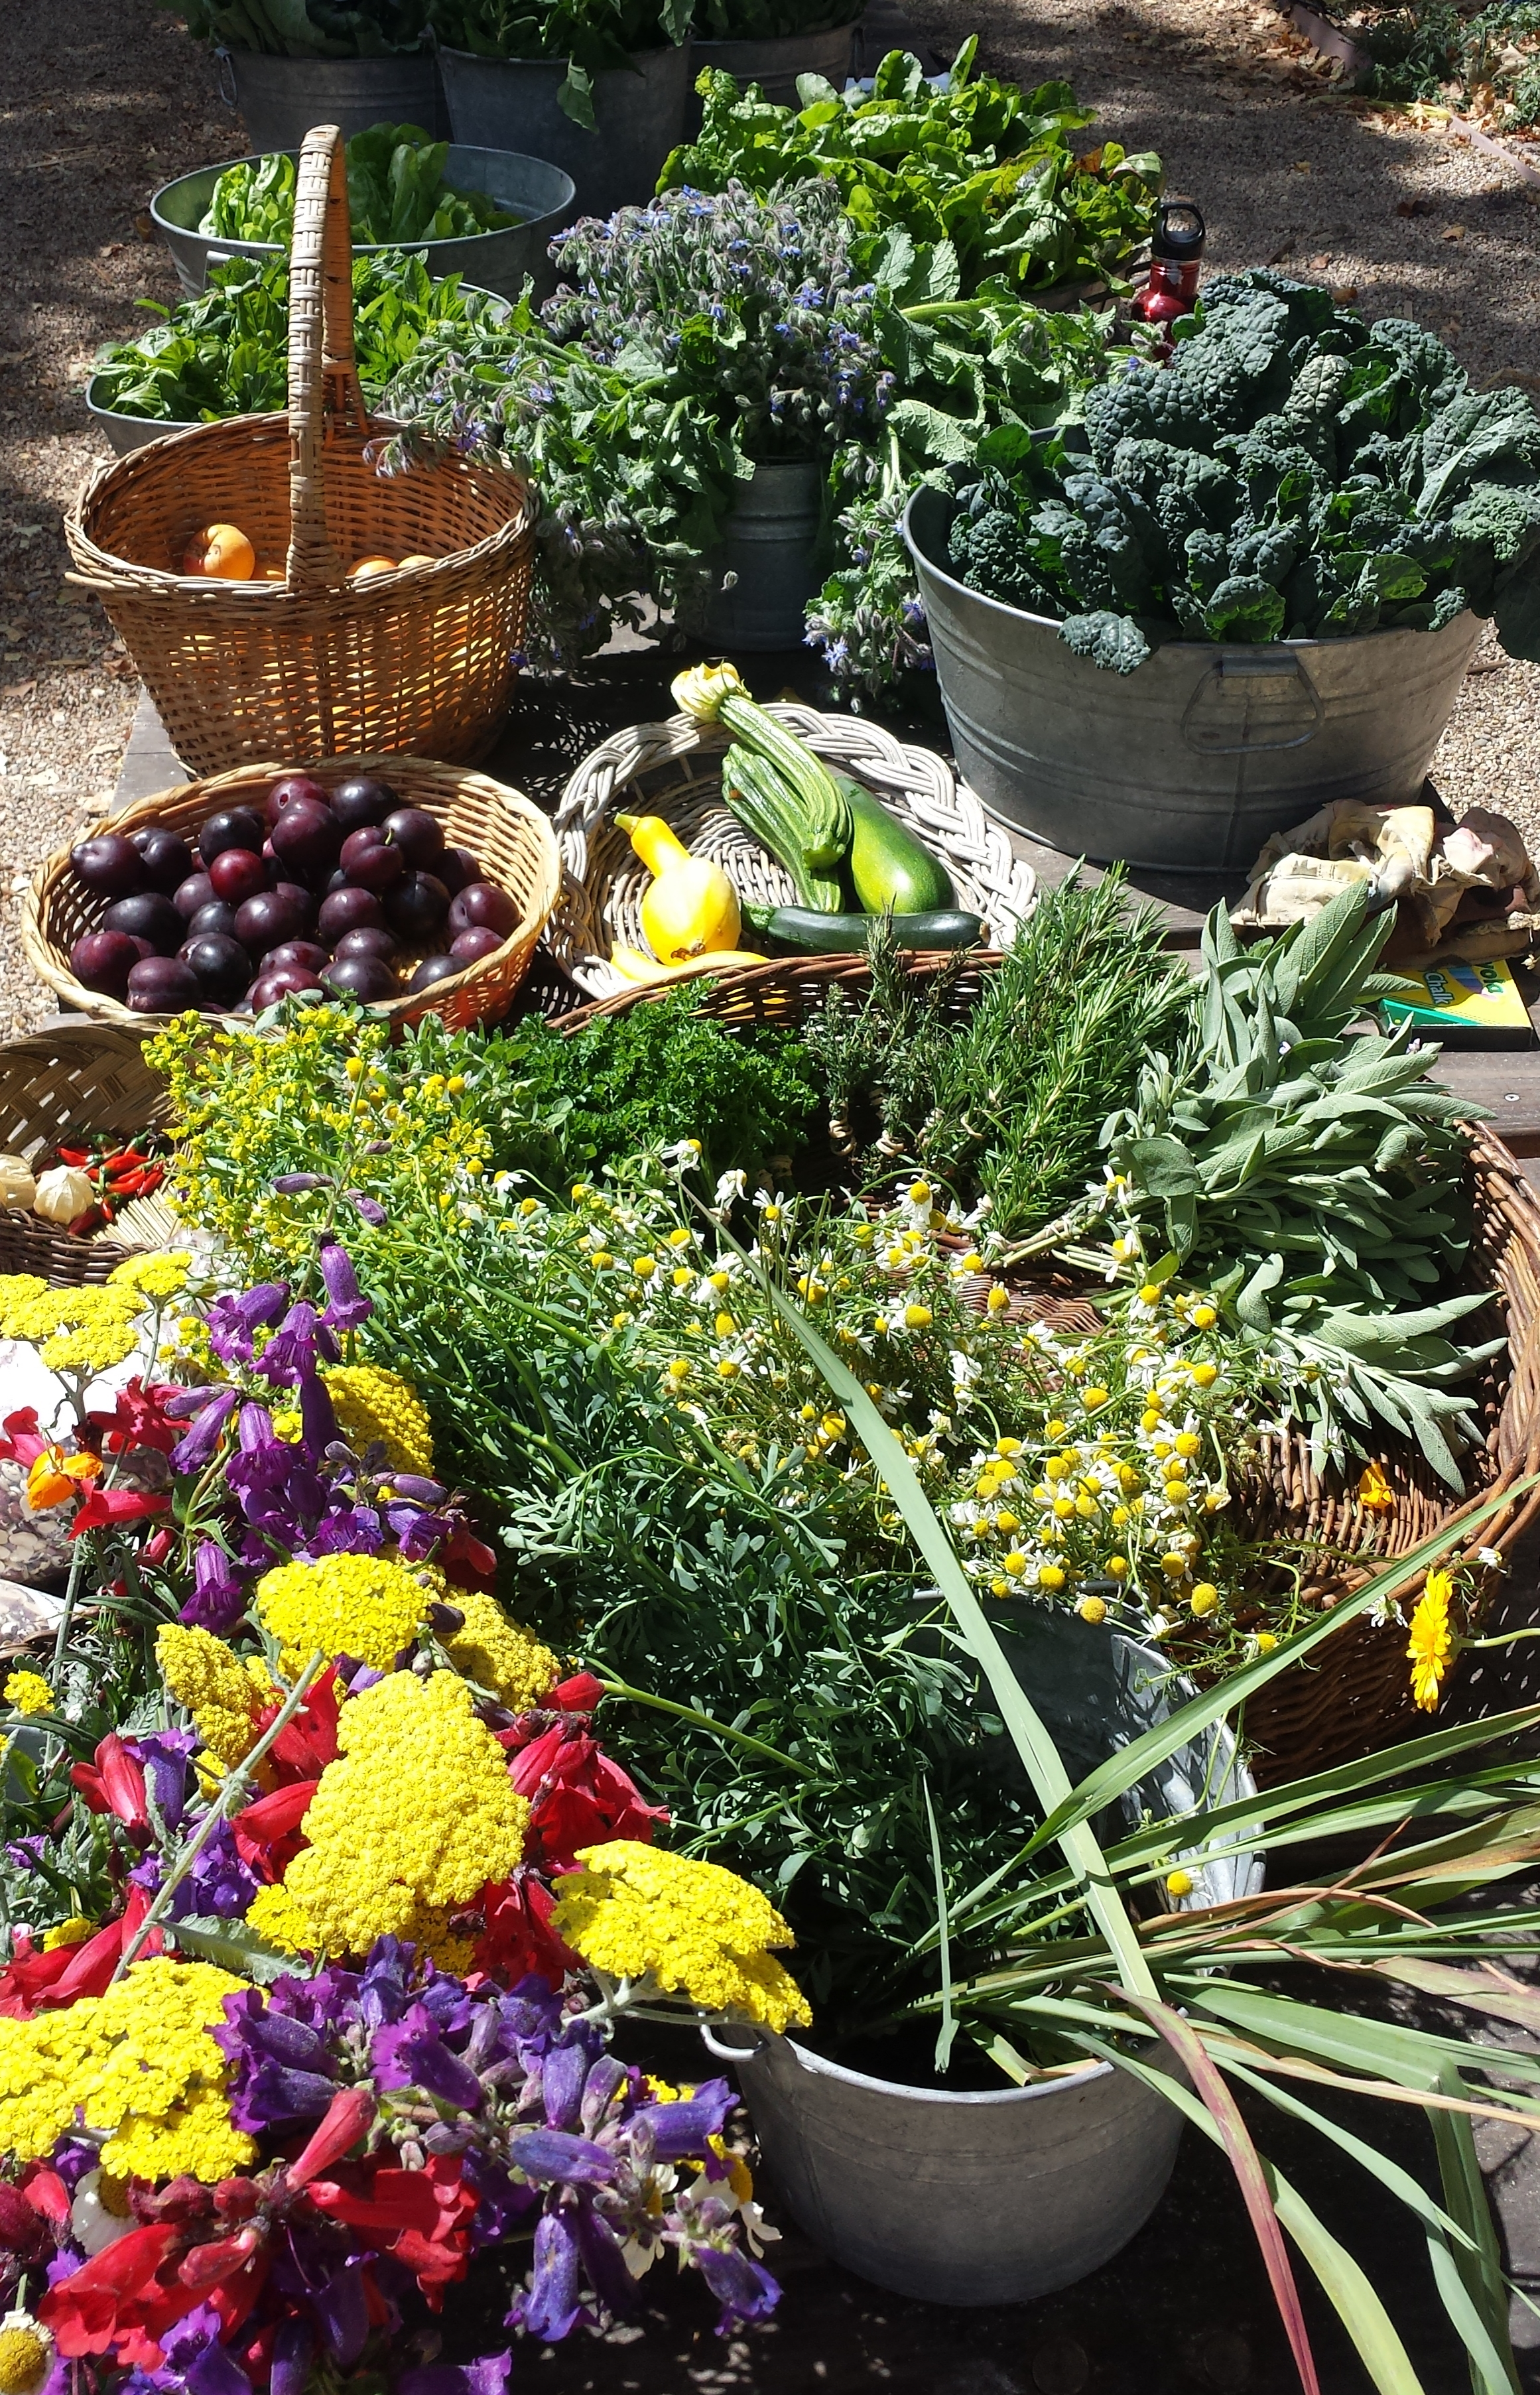 Farmstand offerings a few weeks ago.